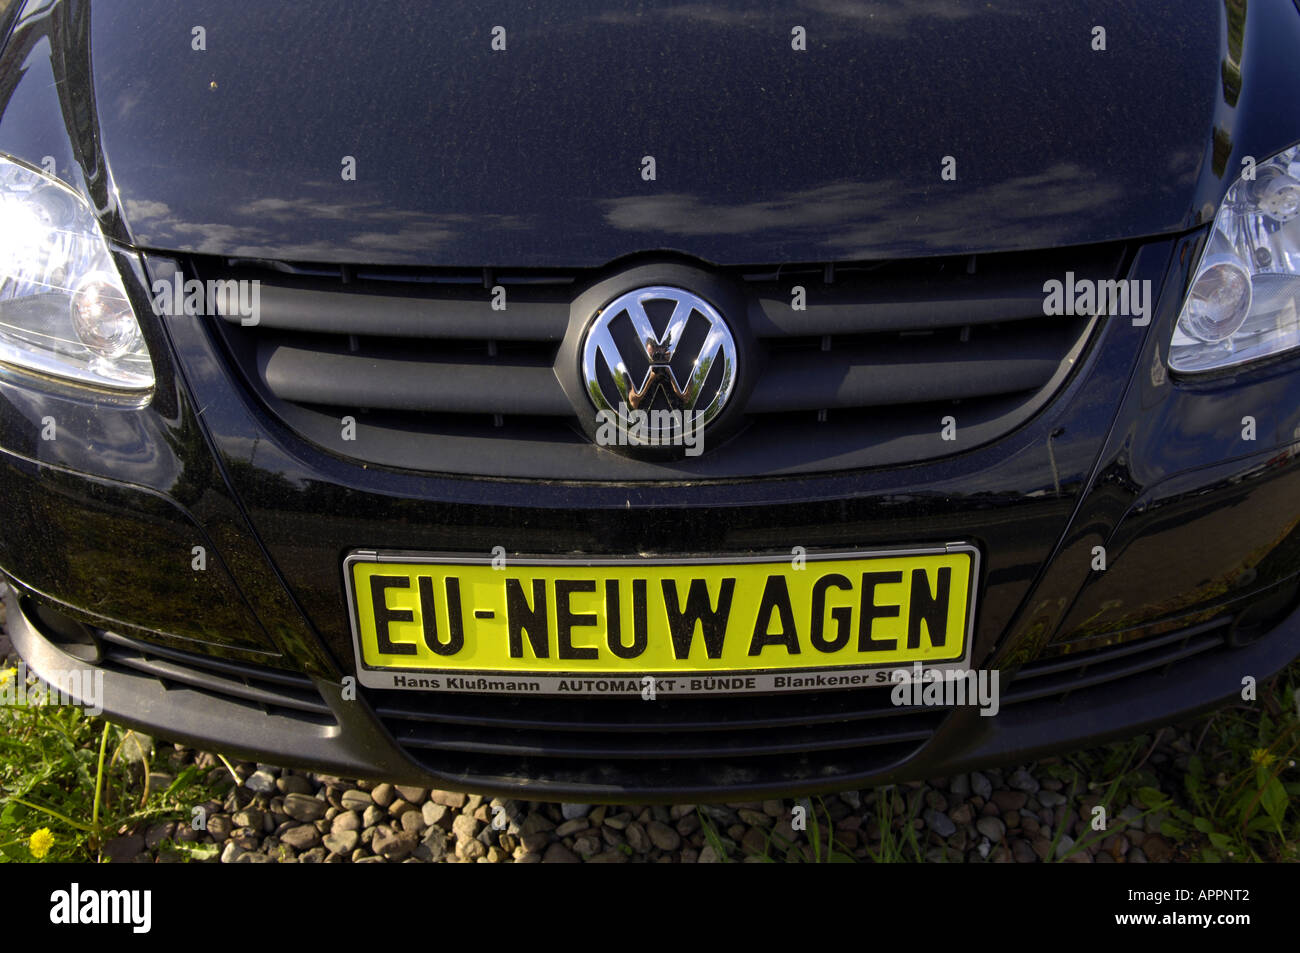 Color car number - Stock Photo Volkswagen Eu Neuwagen New Car Number Plate Yellow Car Motor Motoring Colour Color Saving German Germany Deutschland Deutsch